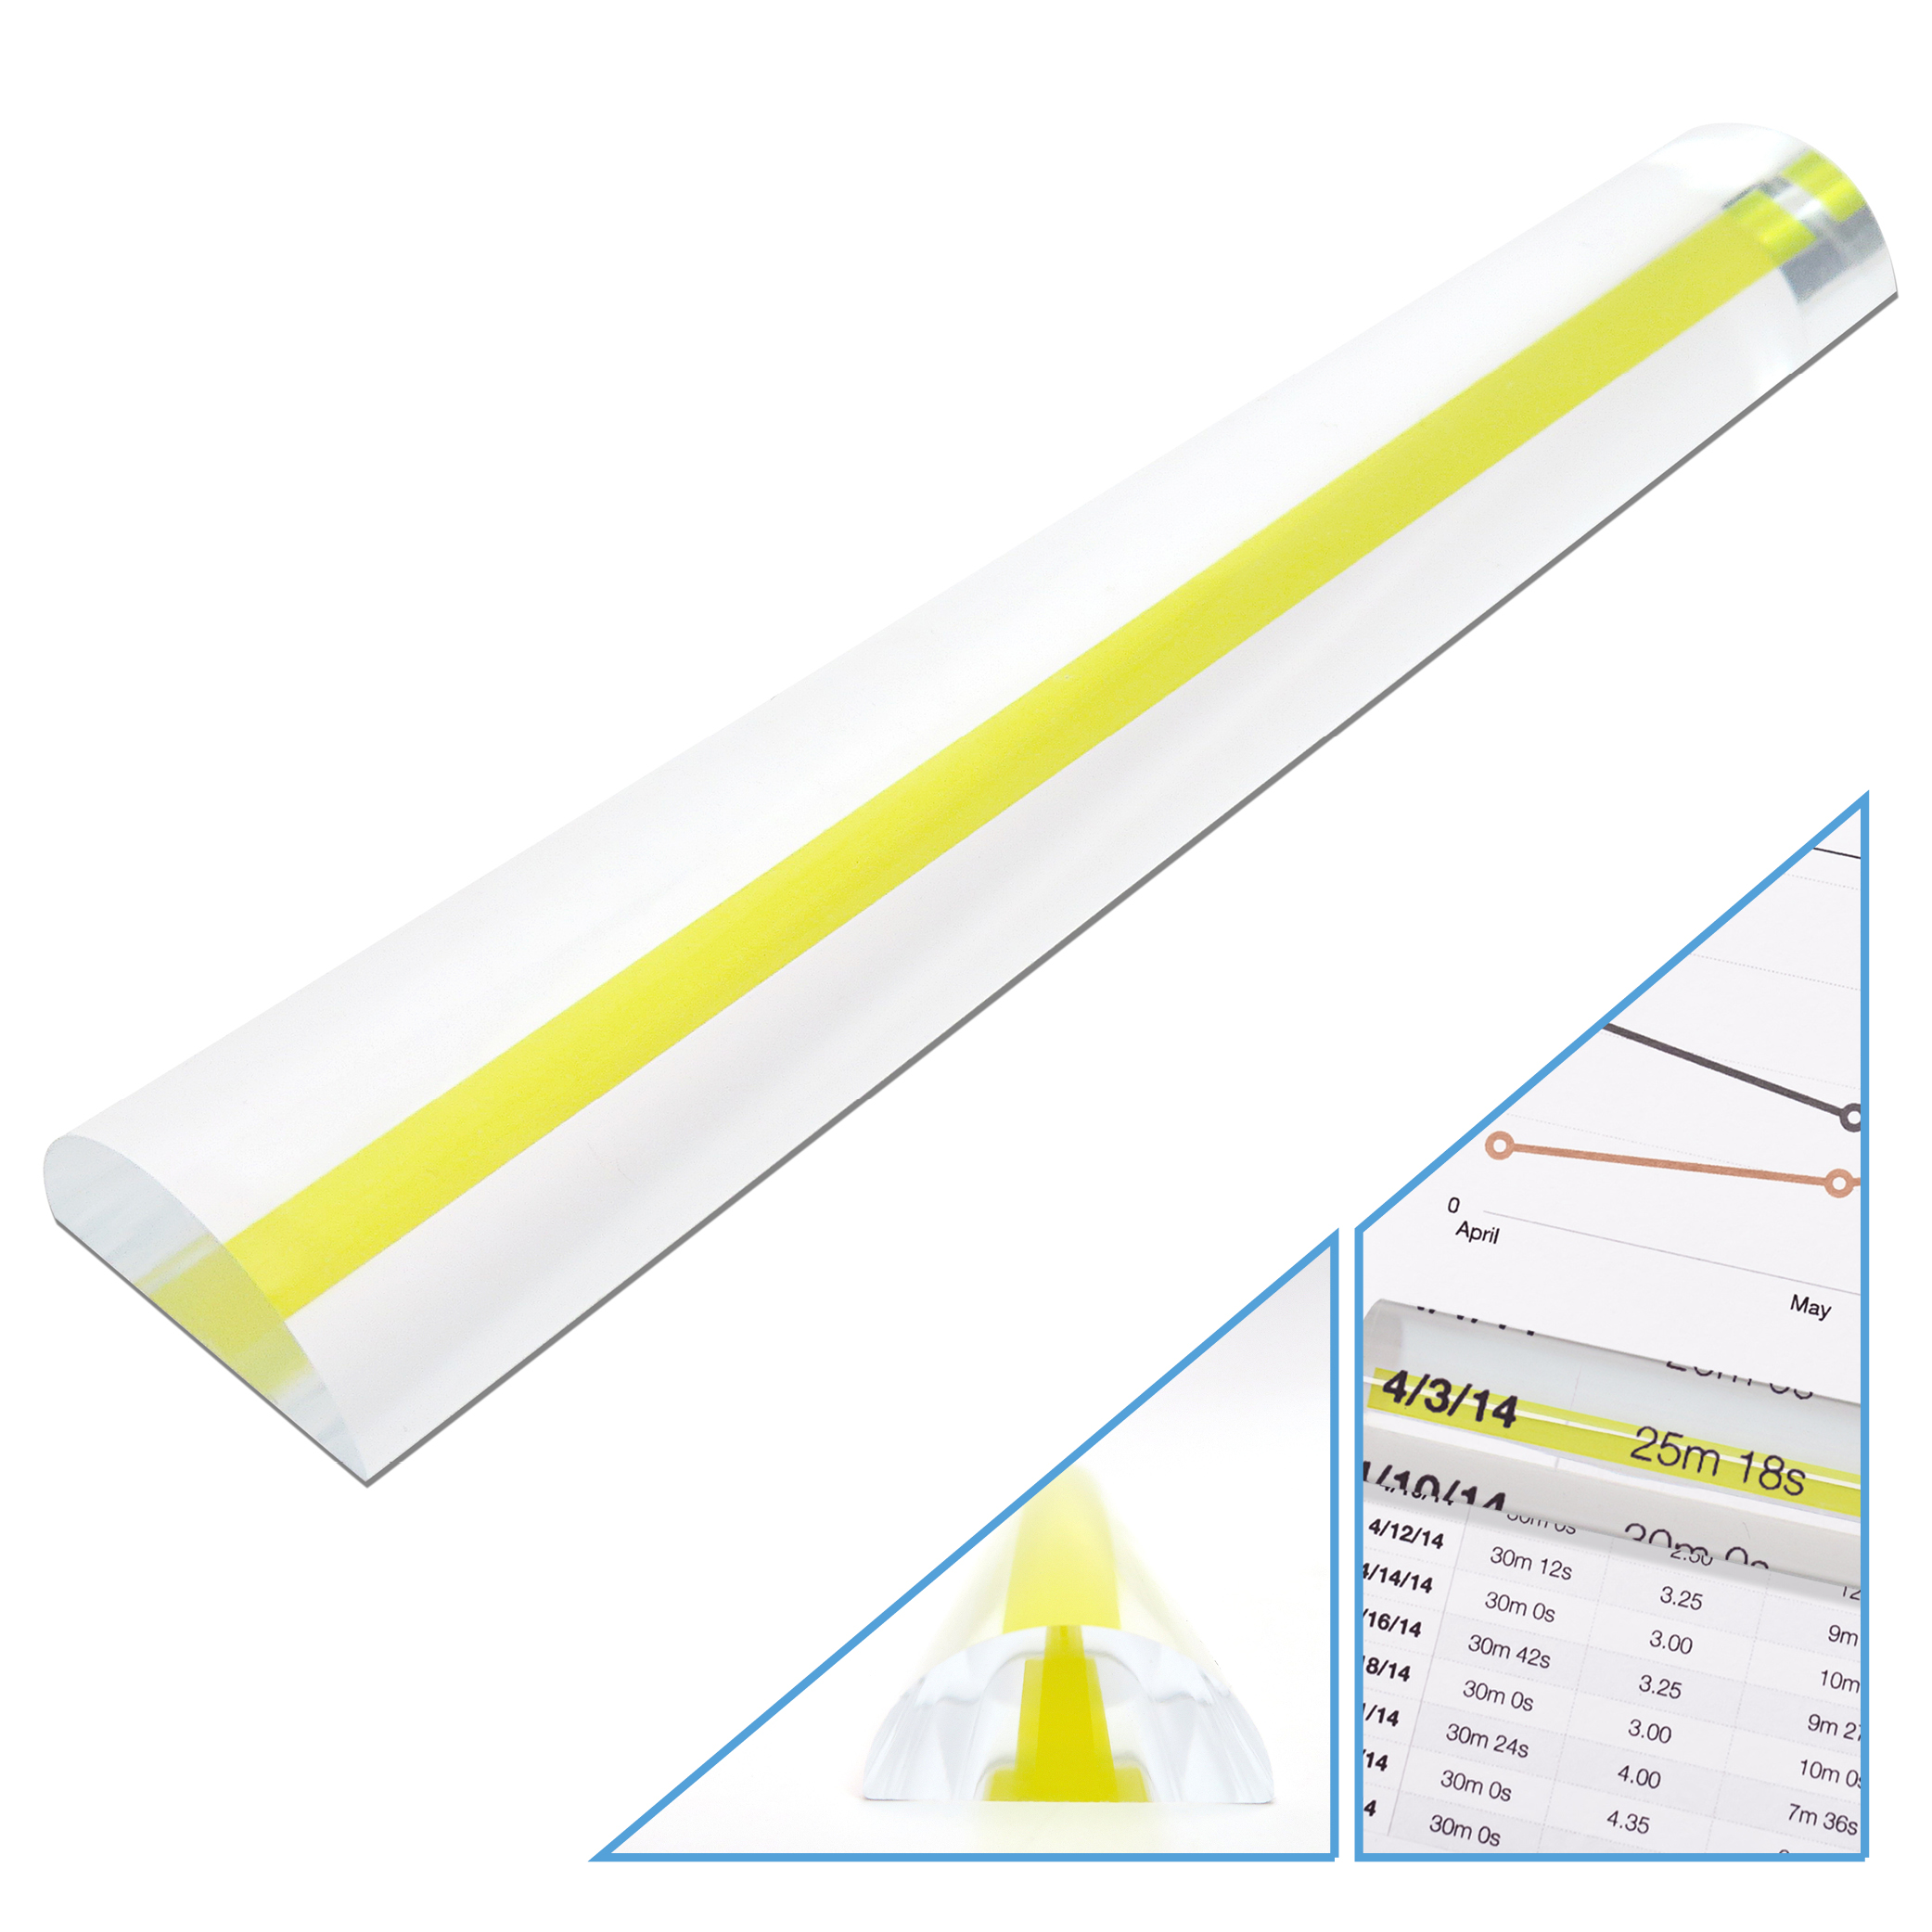 """MagniPros 6"""" Acrylic Bar Magnifier(2x) with Yellow(Comfy for your eyes) Guiding Line-Ideal for Reading & Low Vision"""